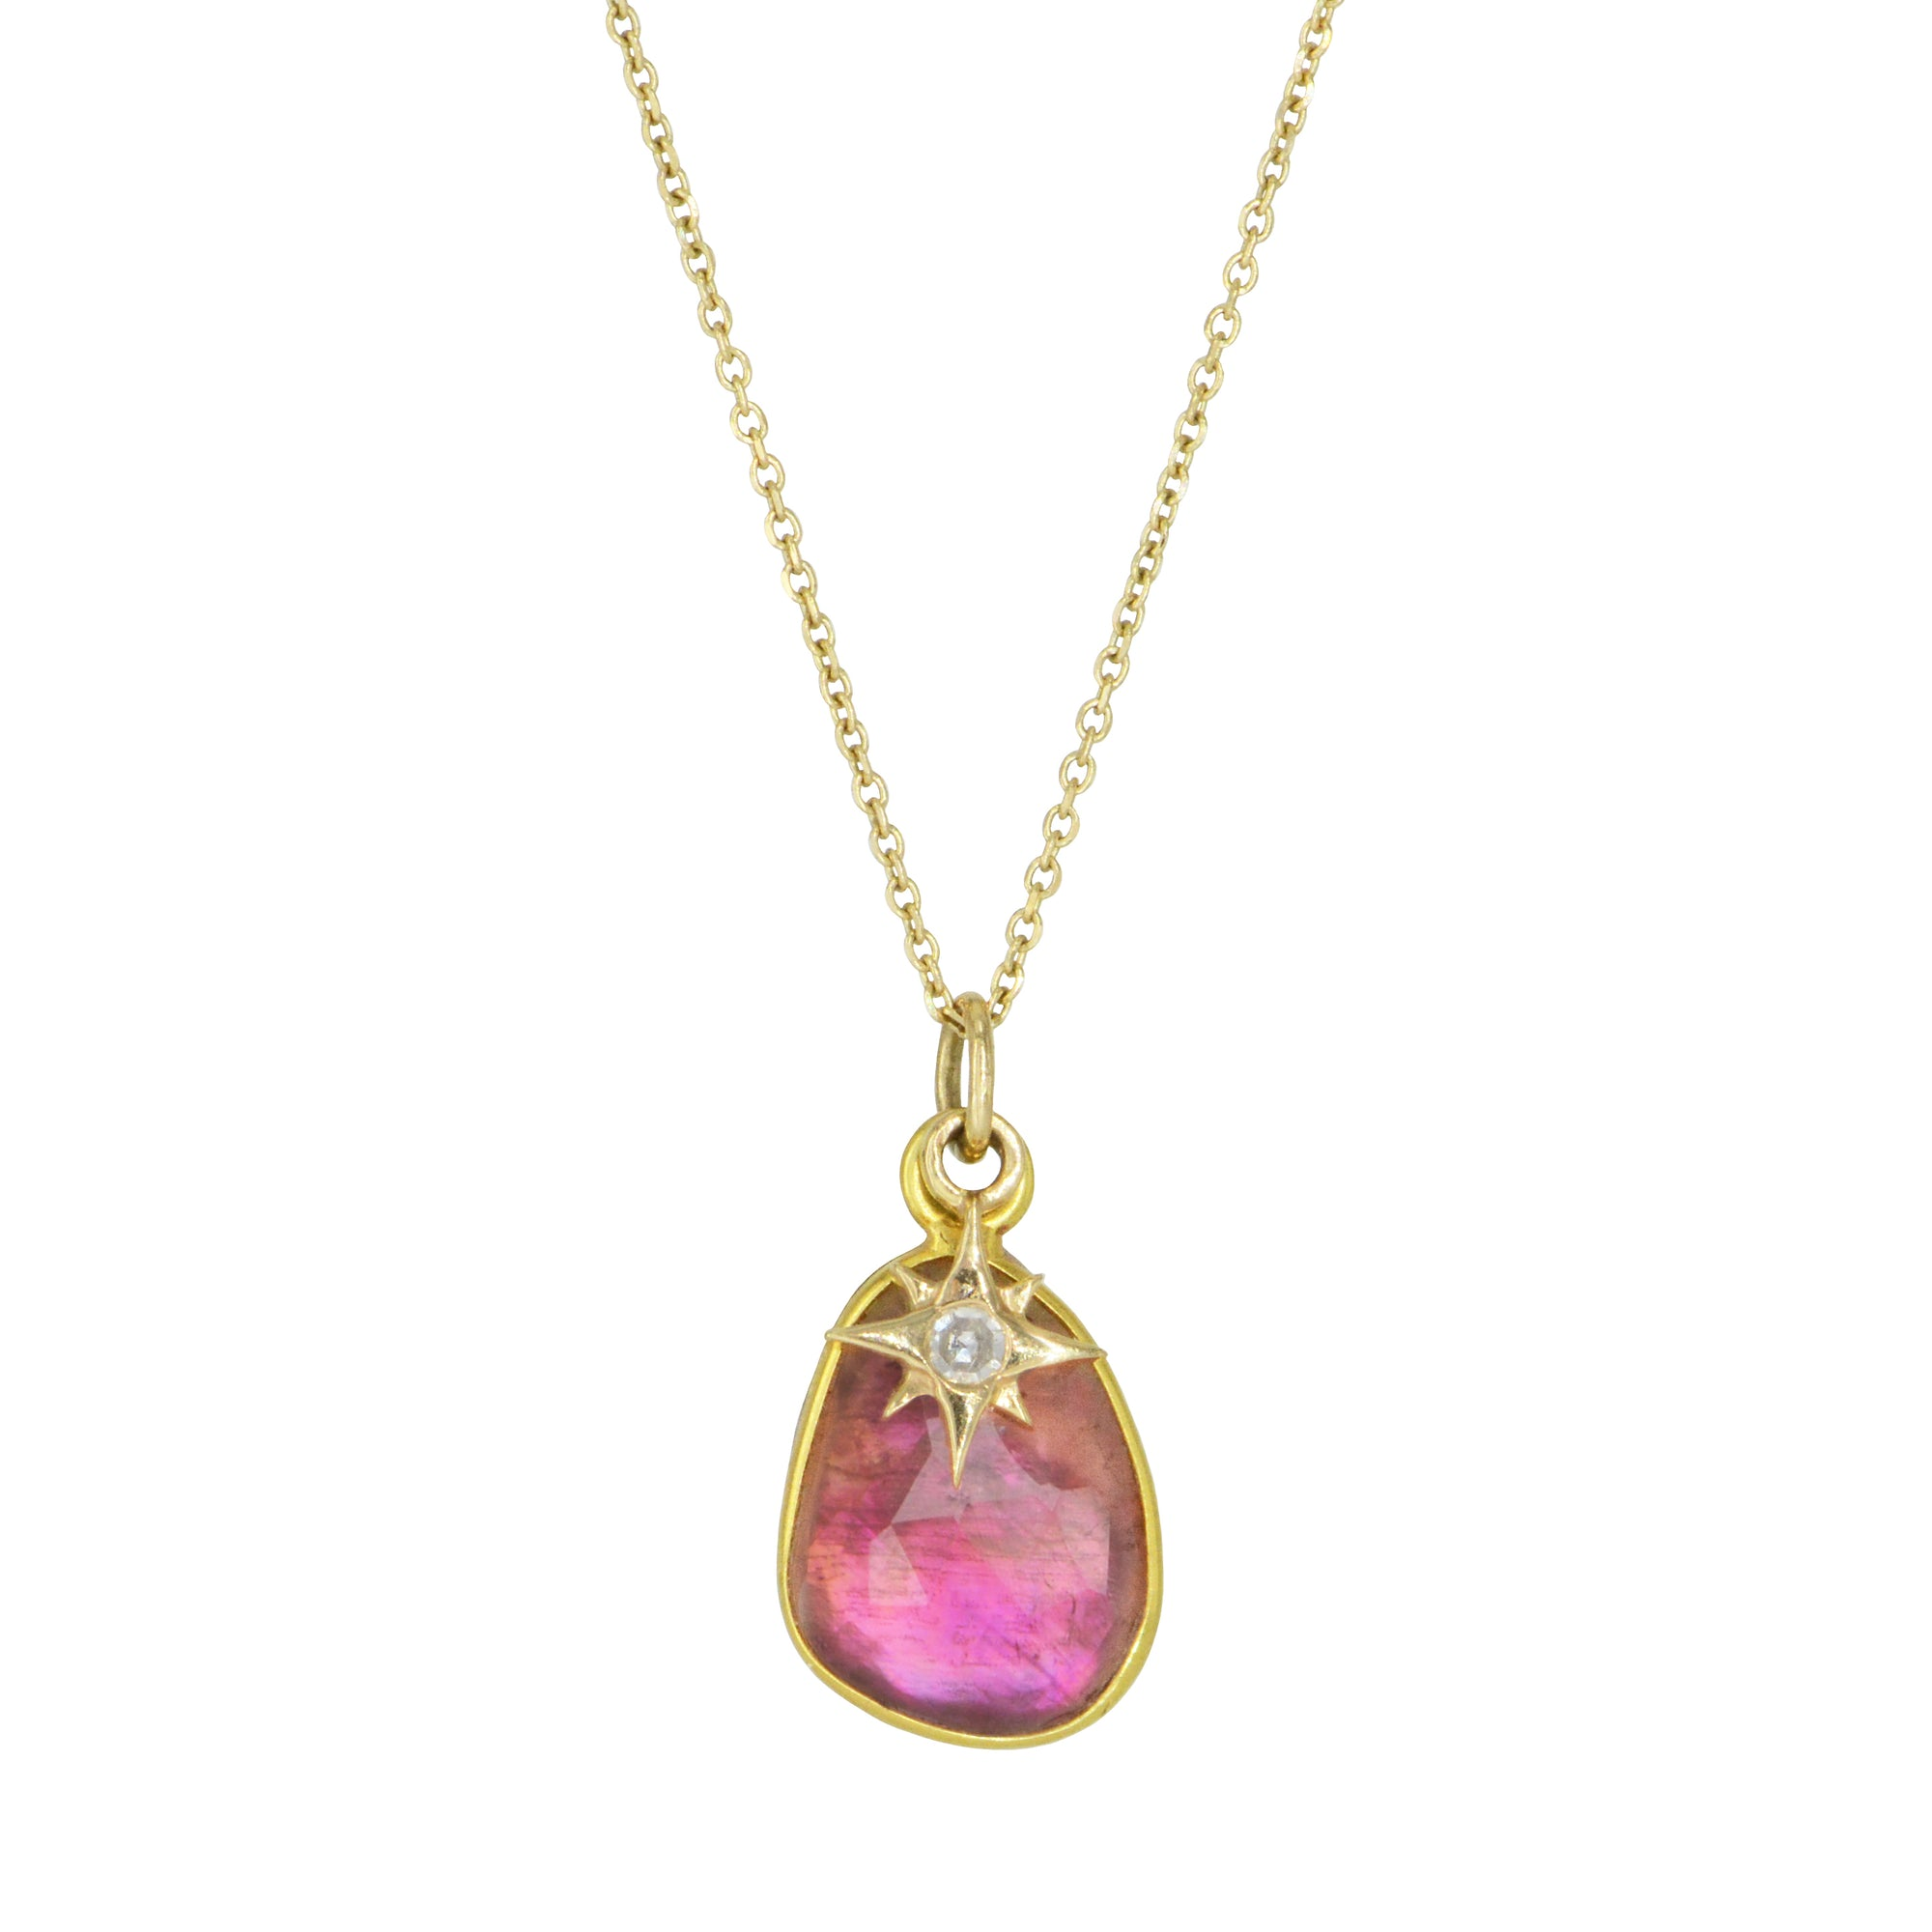 Pink Tourmaline Necklace With Diamond Star Charm